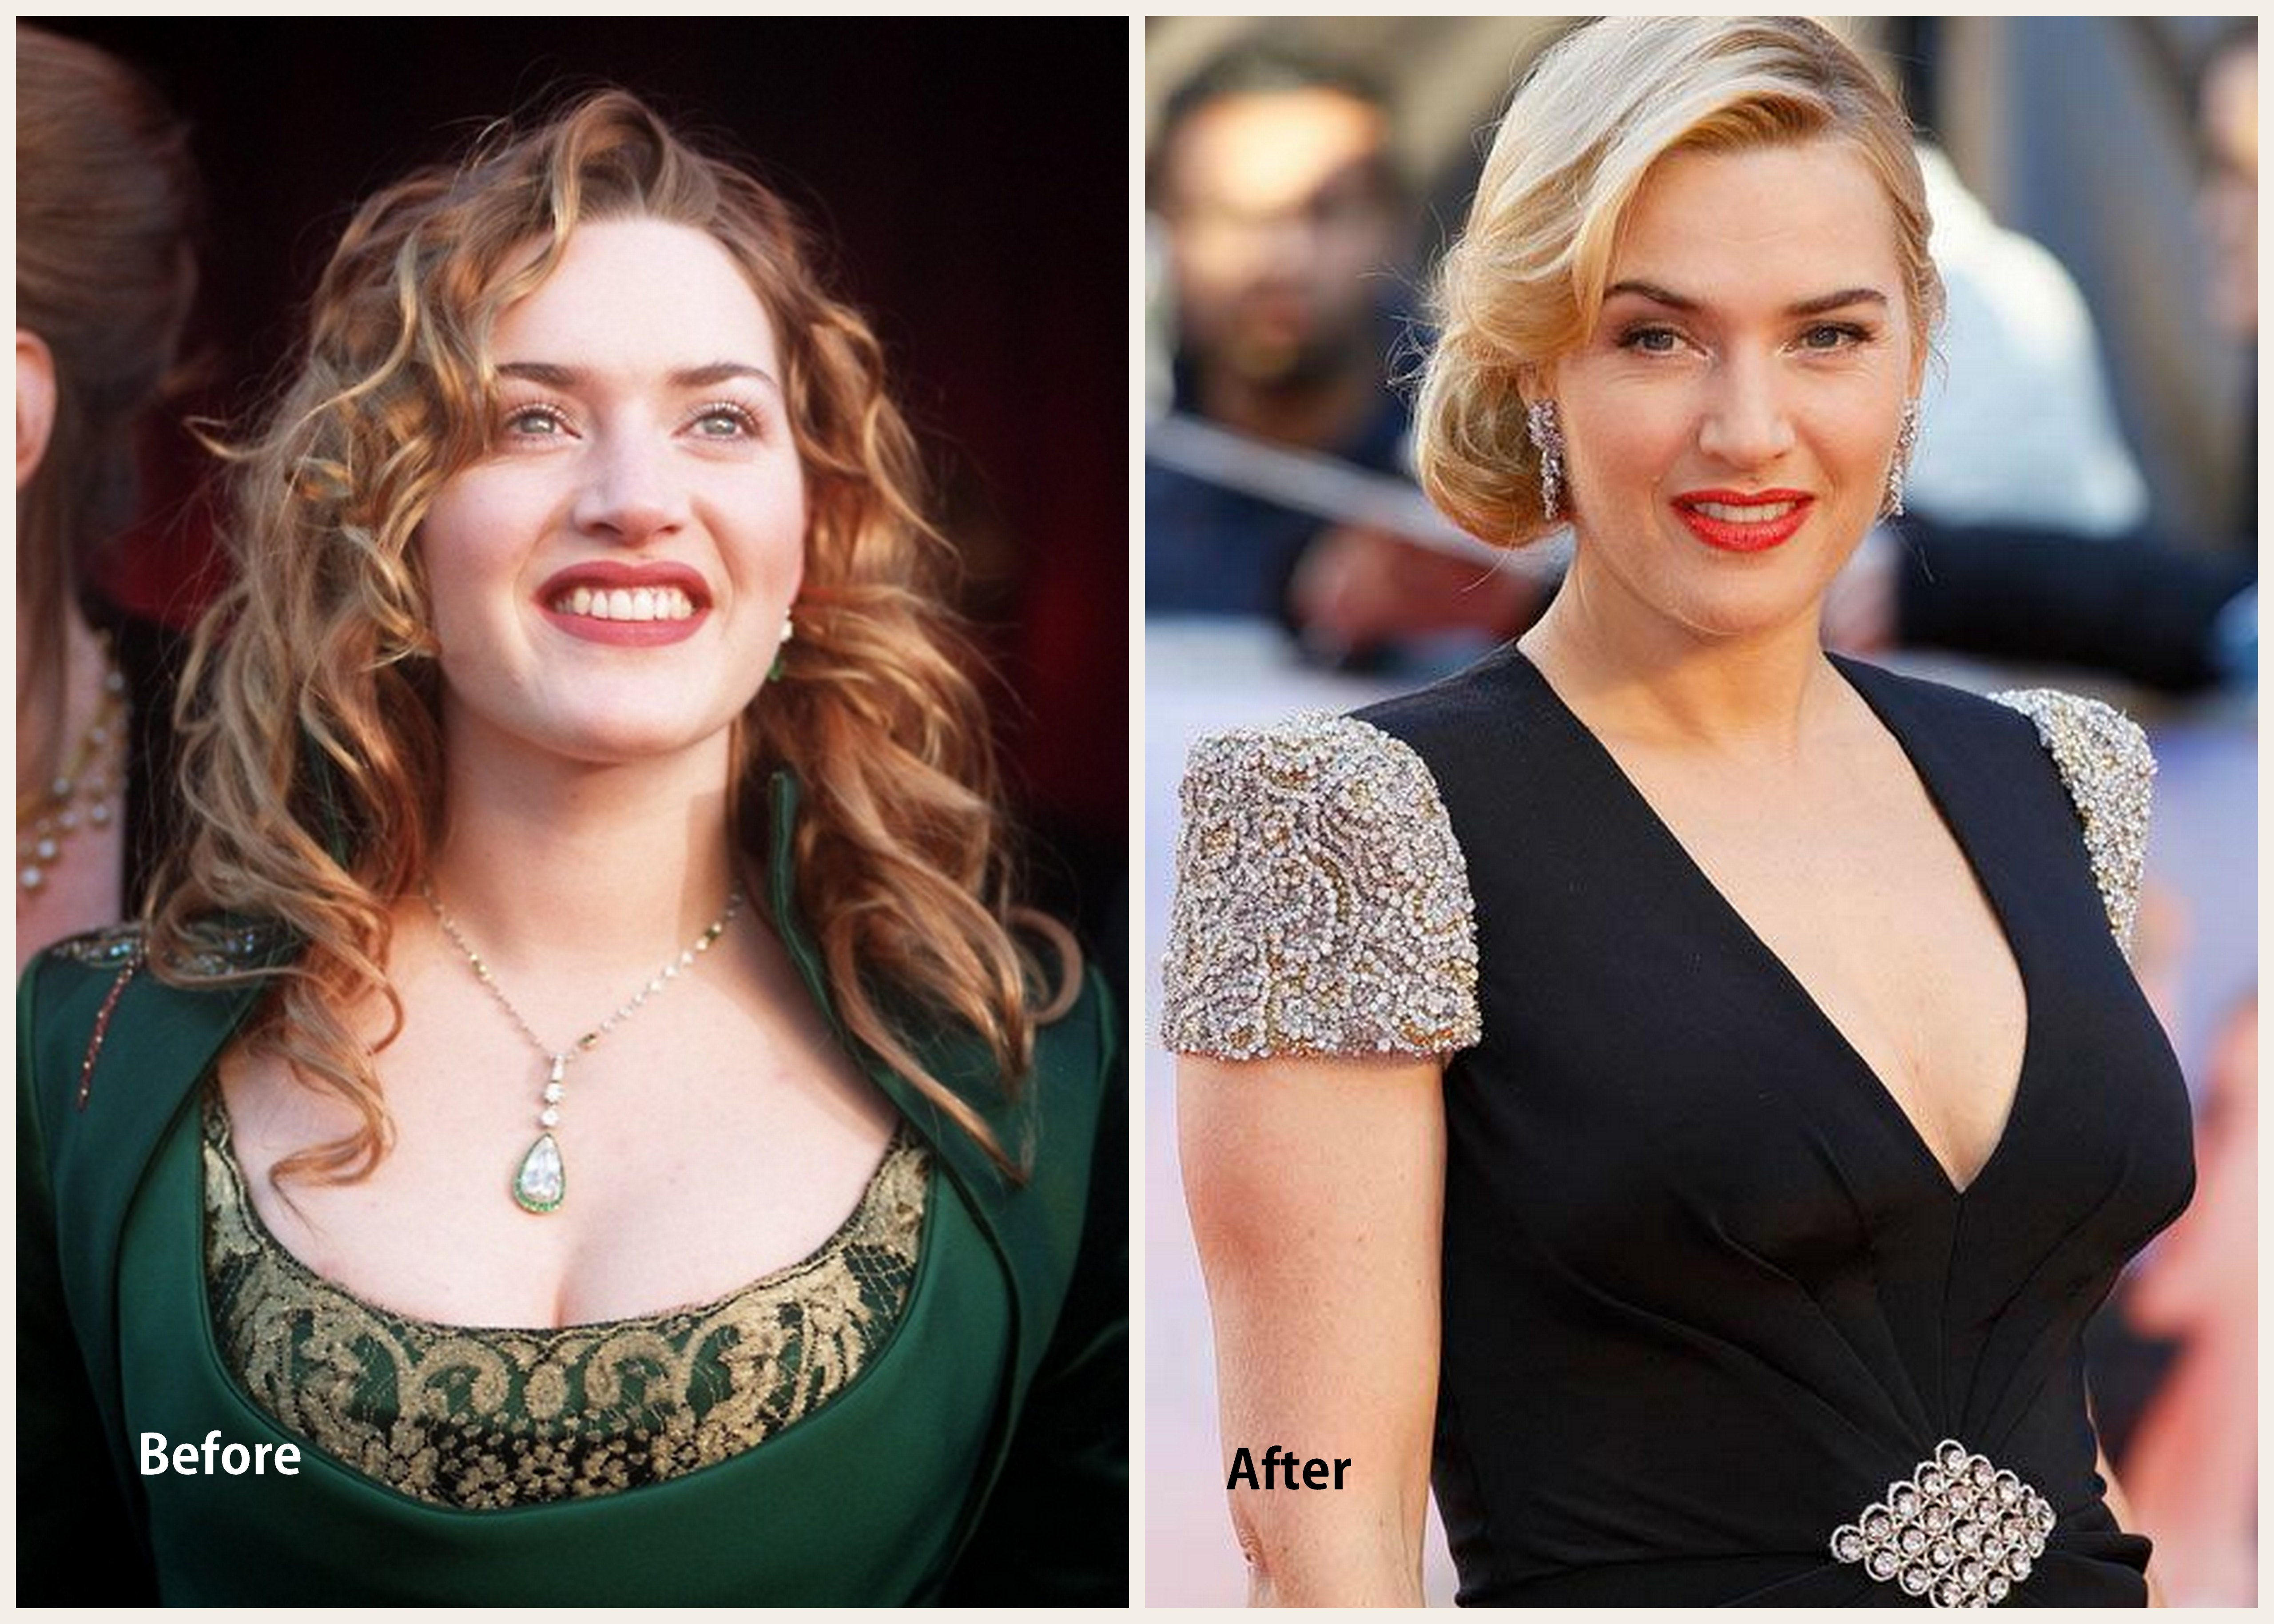 Kate Winslet Plastic Surgery Kate Winslet Before and after photo